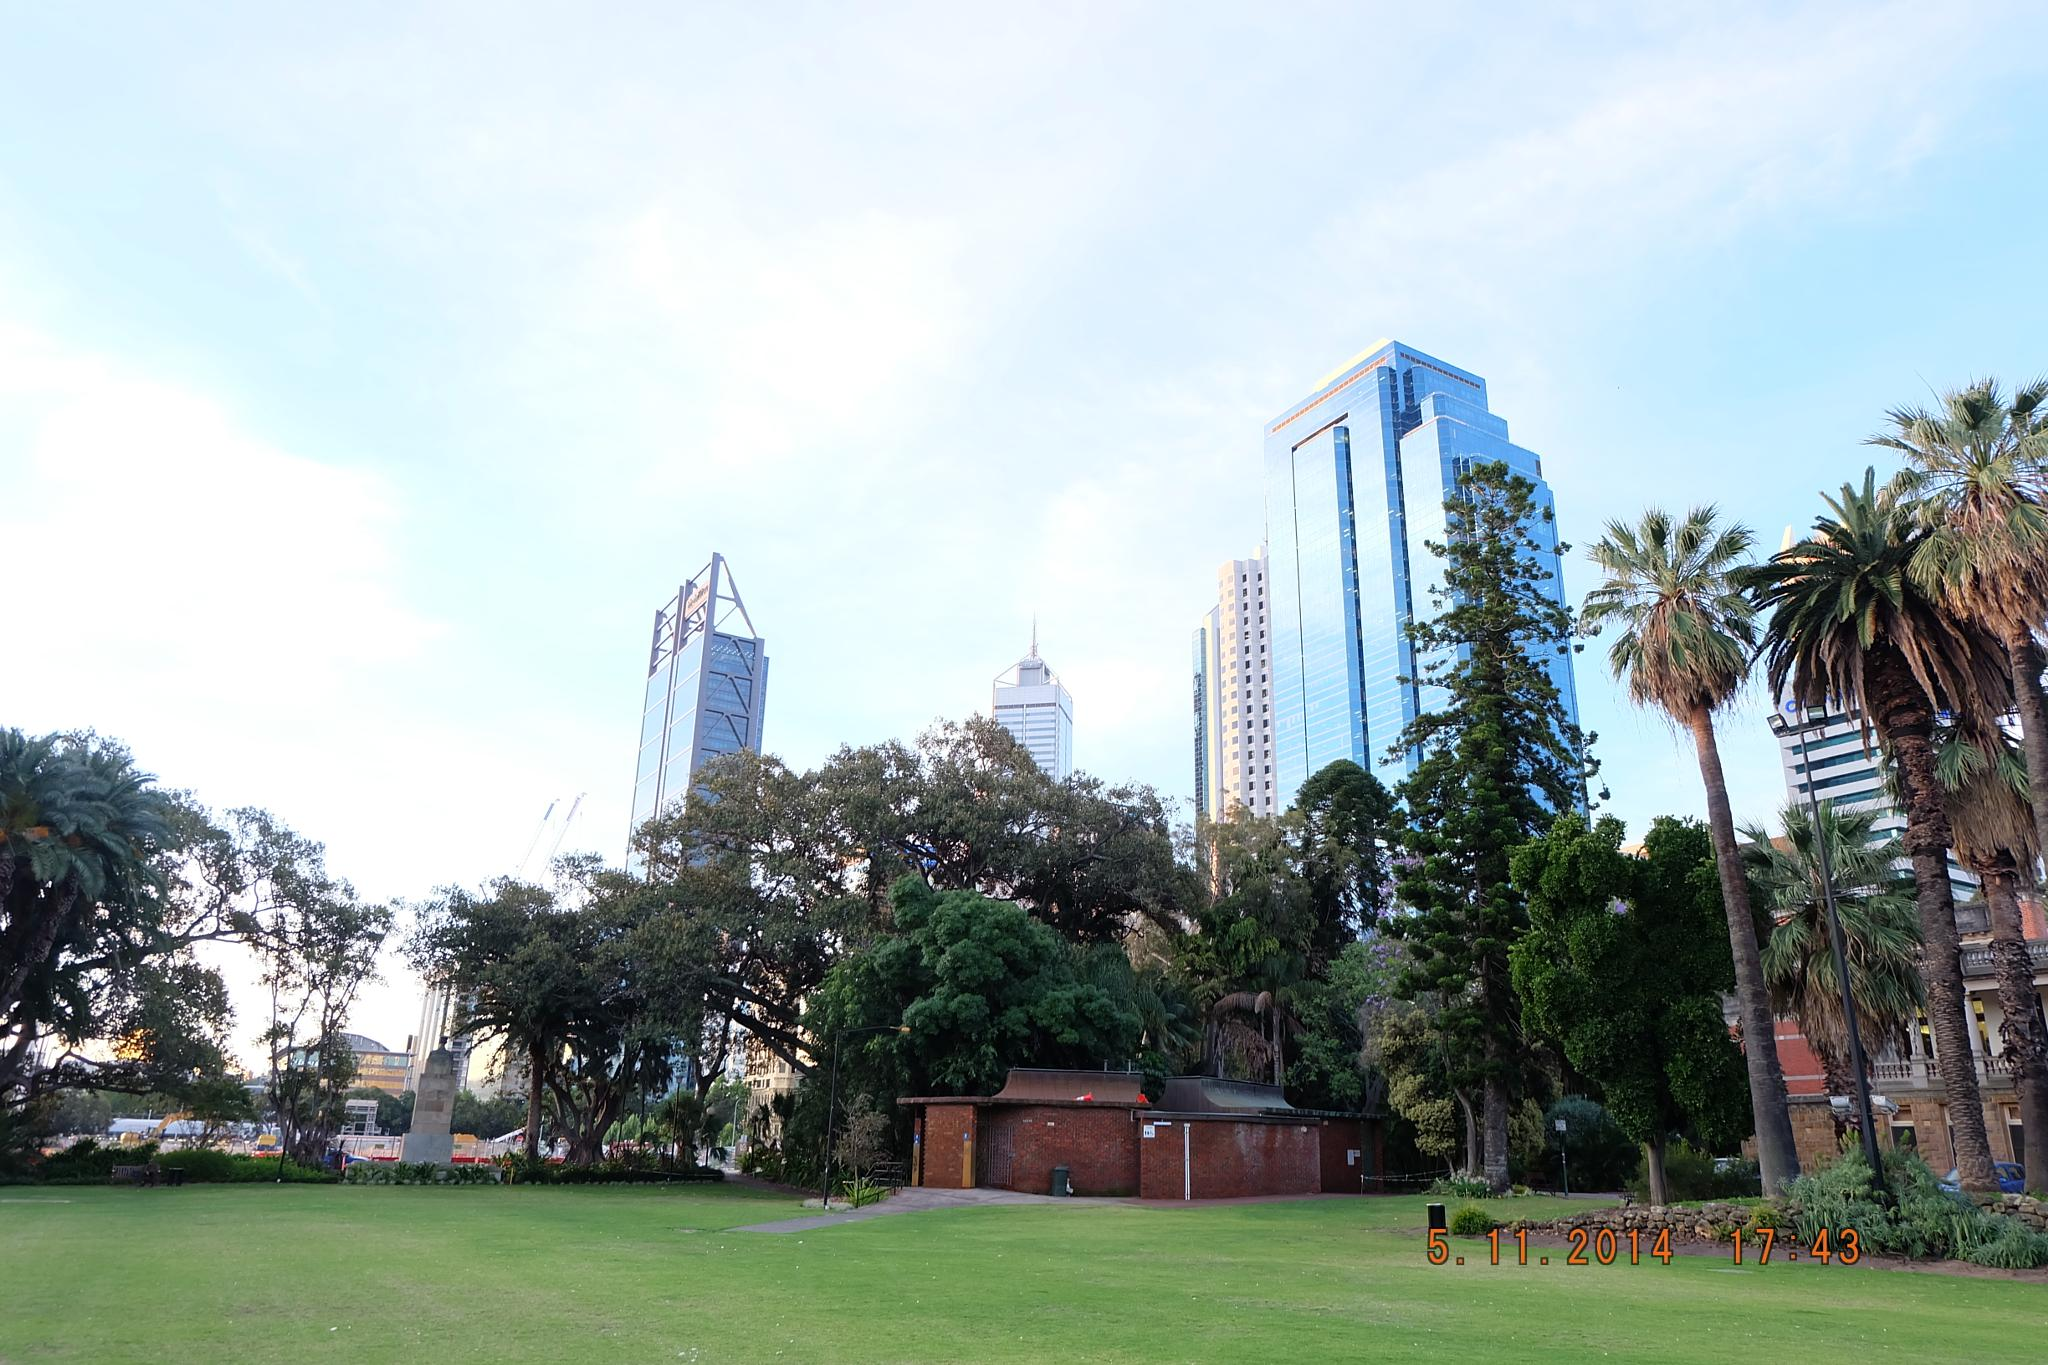 Landscape of Perth  by agungkemang5